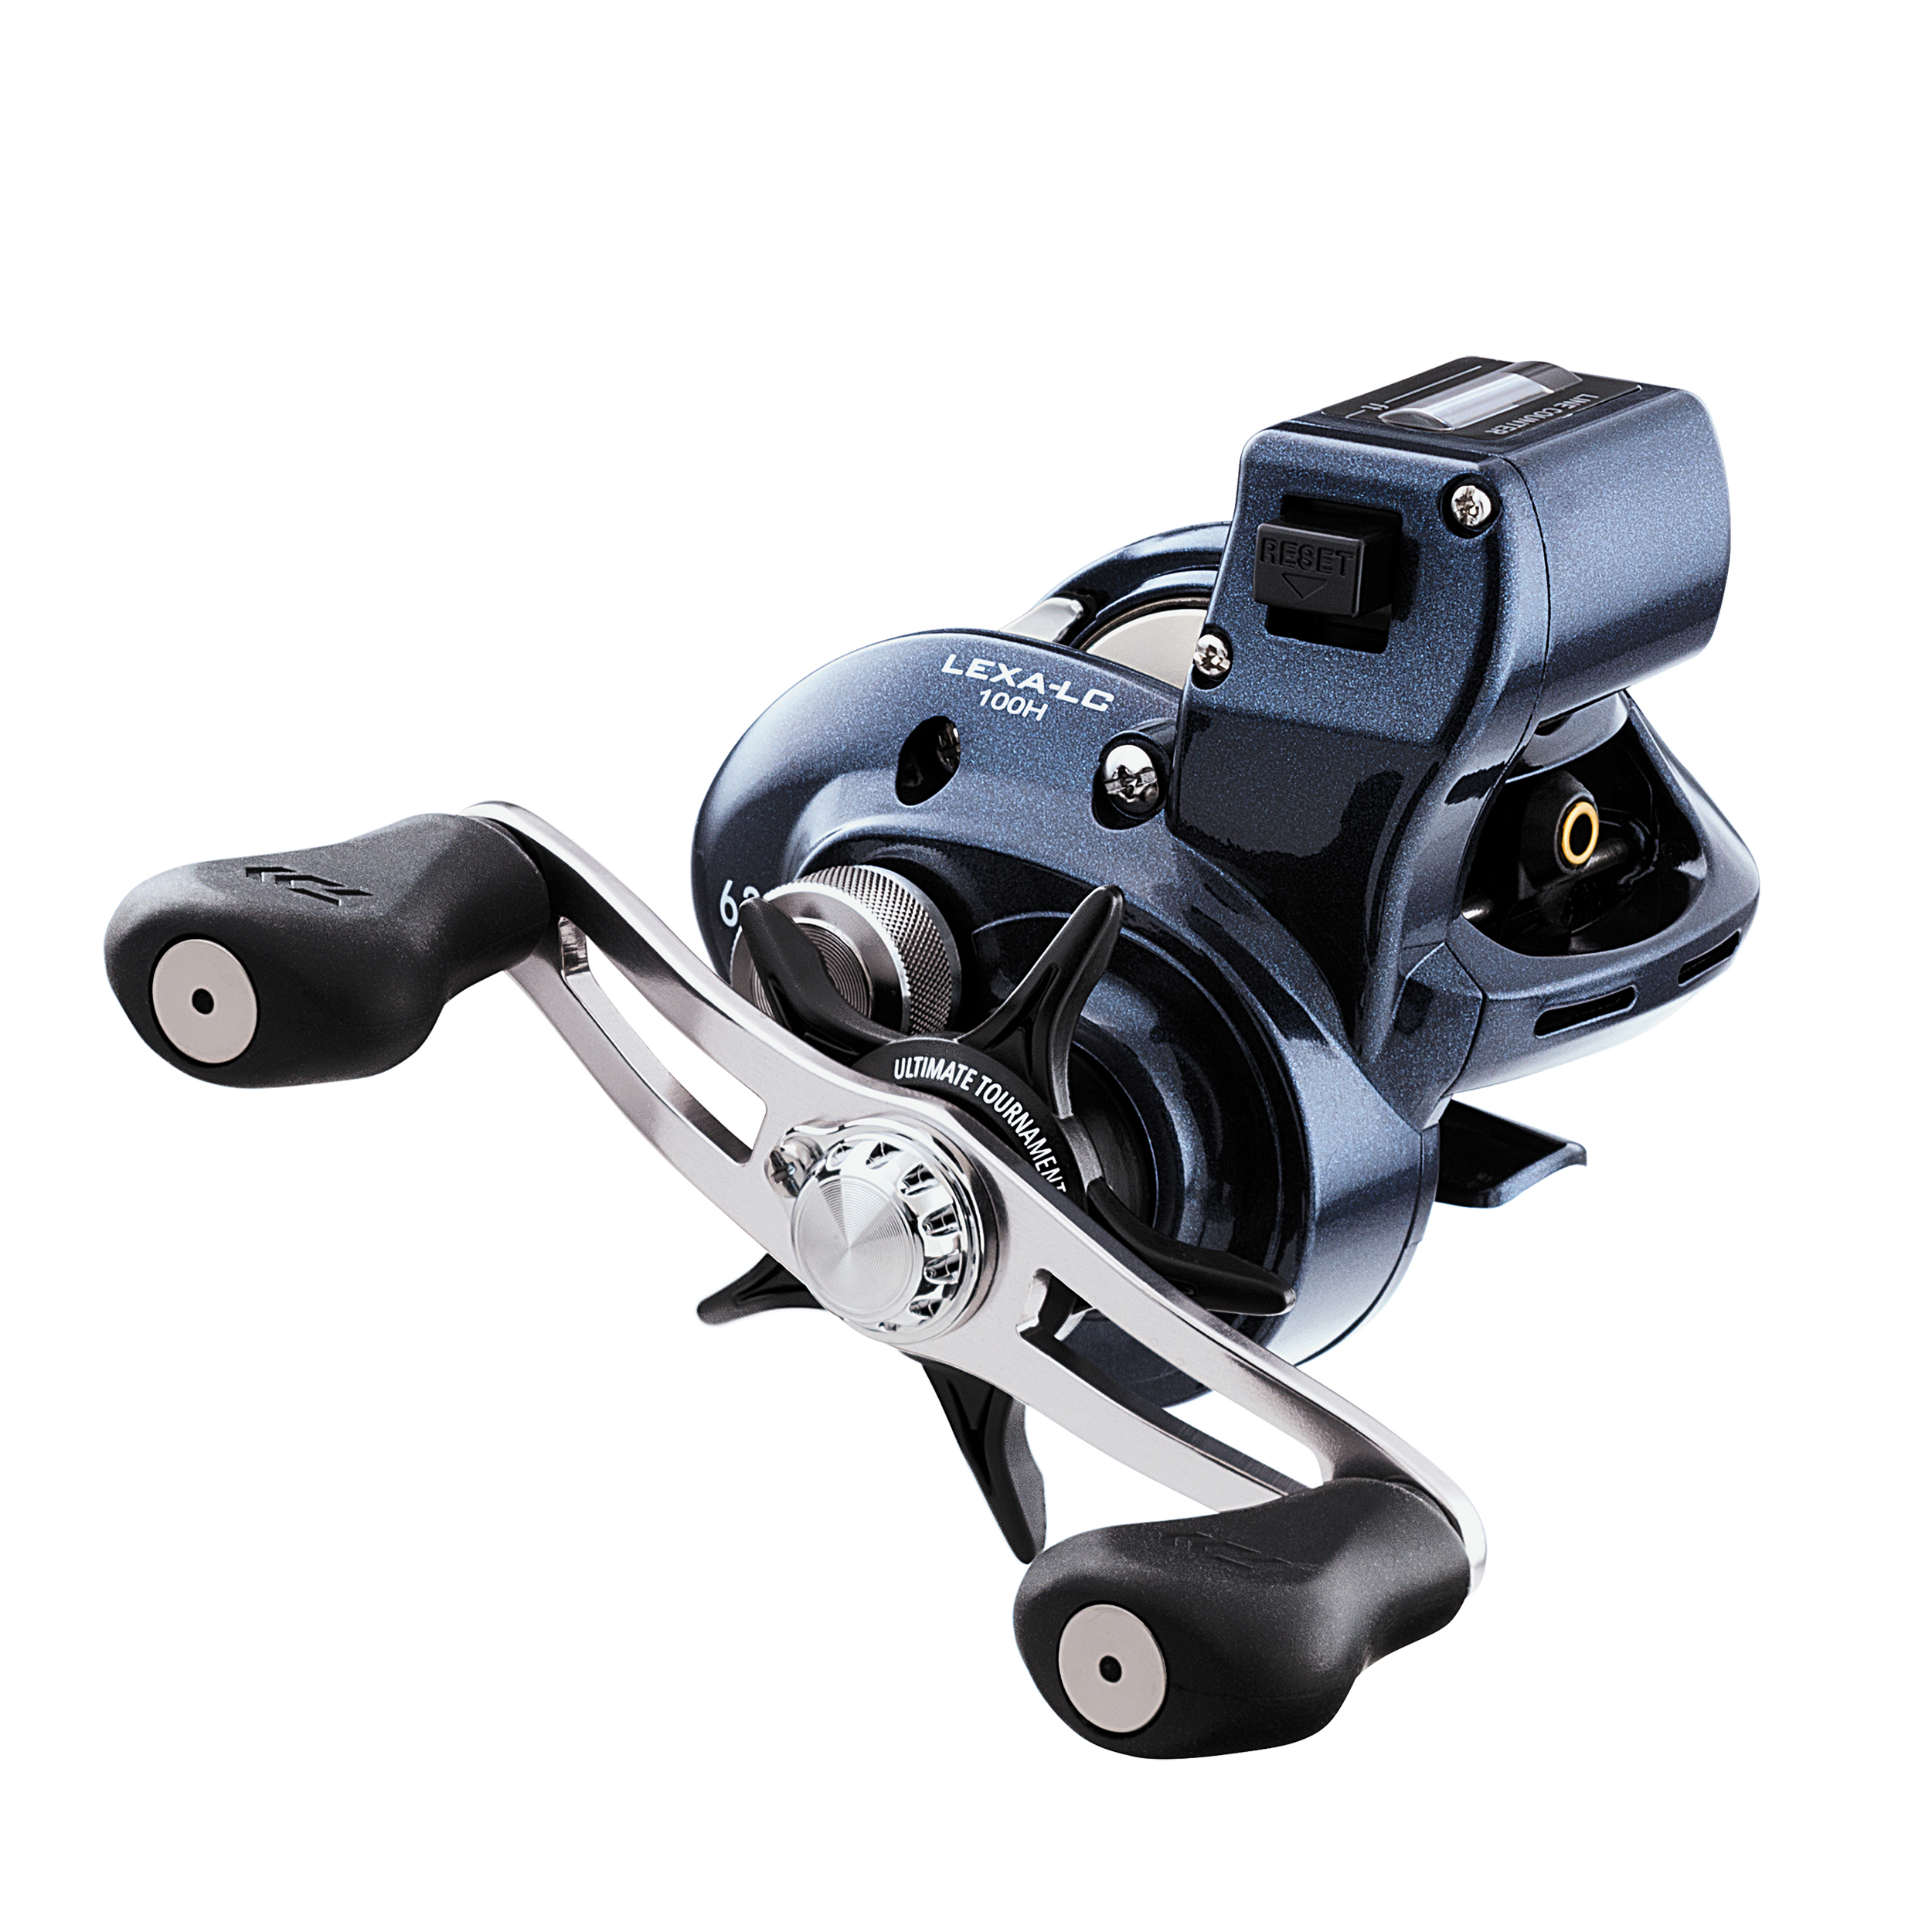 "Daiwa Lexa Line Counter Casting Reel 100, 6.3:1 Gear Ratio, 25.70"" Retrieve Rate, 11 lb Max Drag, Right Hand"